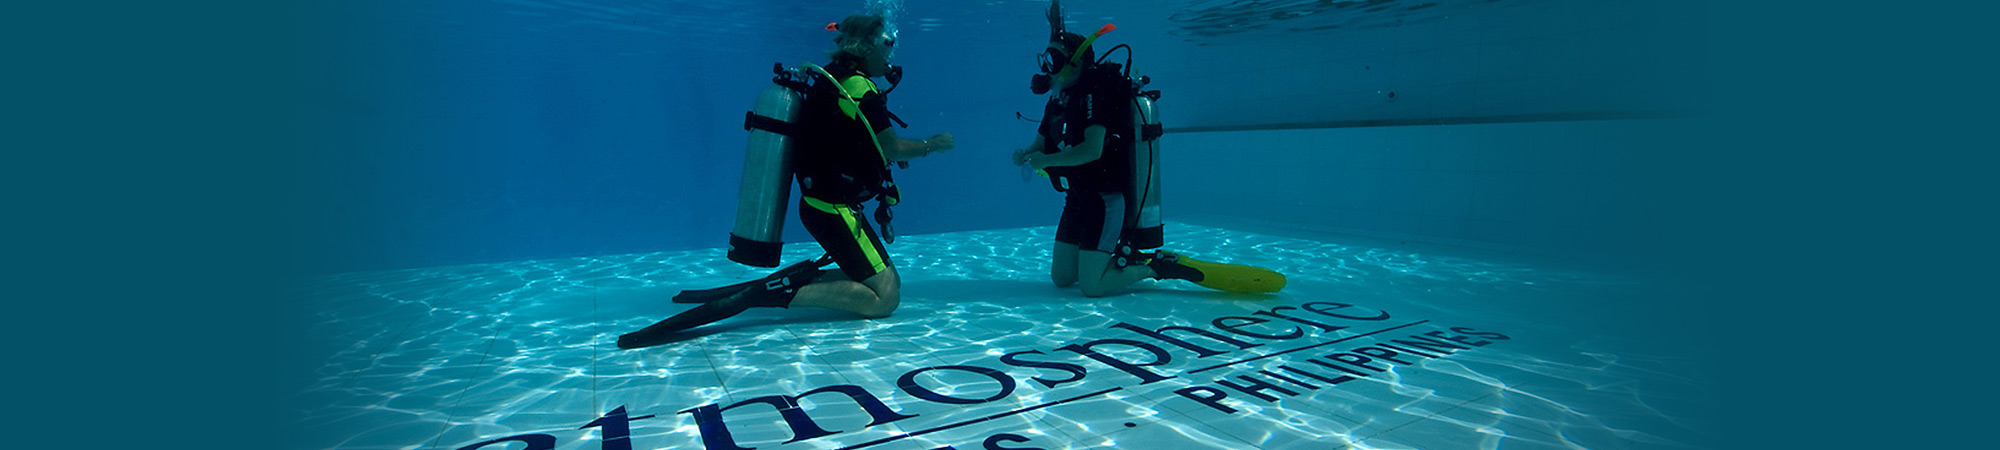 Our custom built large swimming pool at Atmosphere in the Philippines is ideal for your Padi Course with us